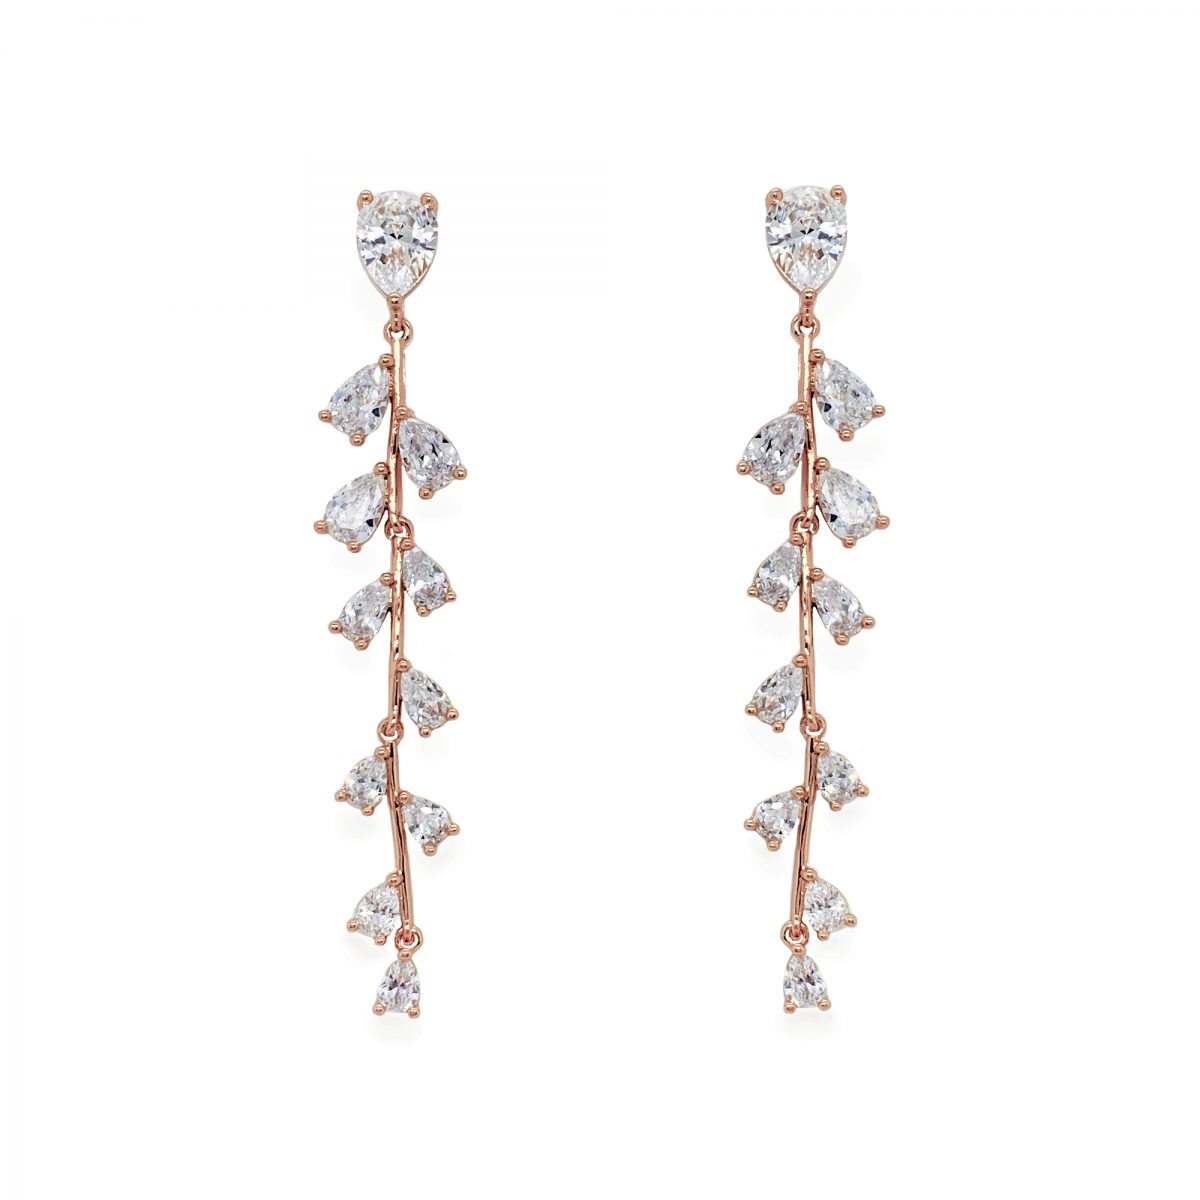 Ivory and Co Willow Drop Earrings - Rose Gold 1